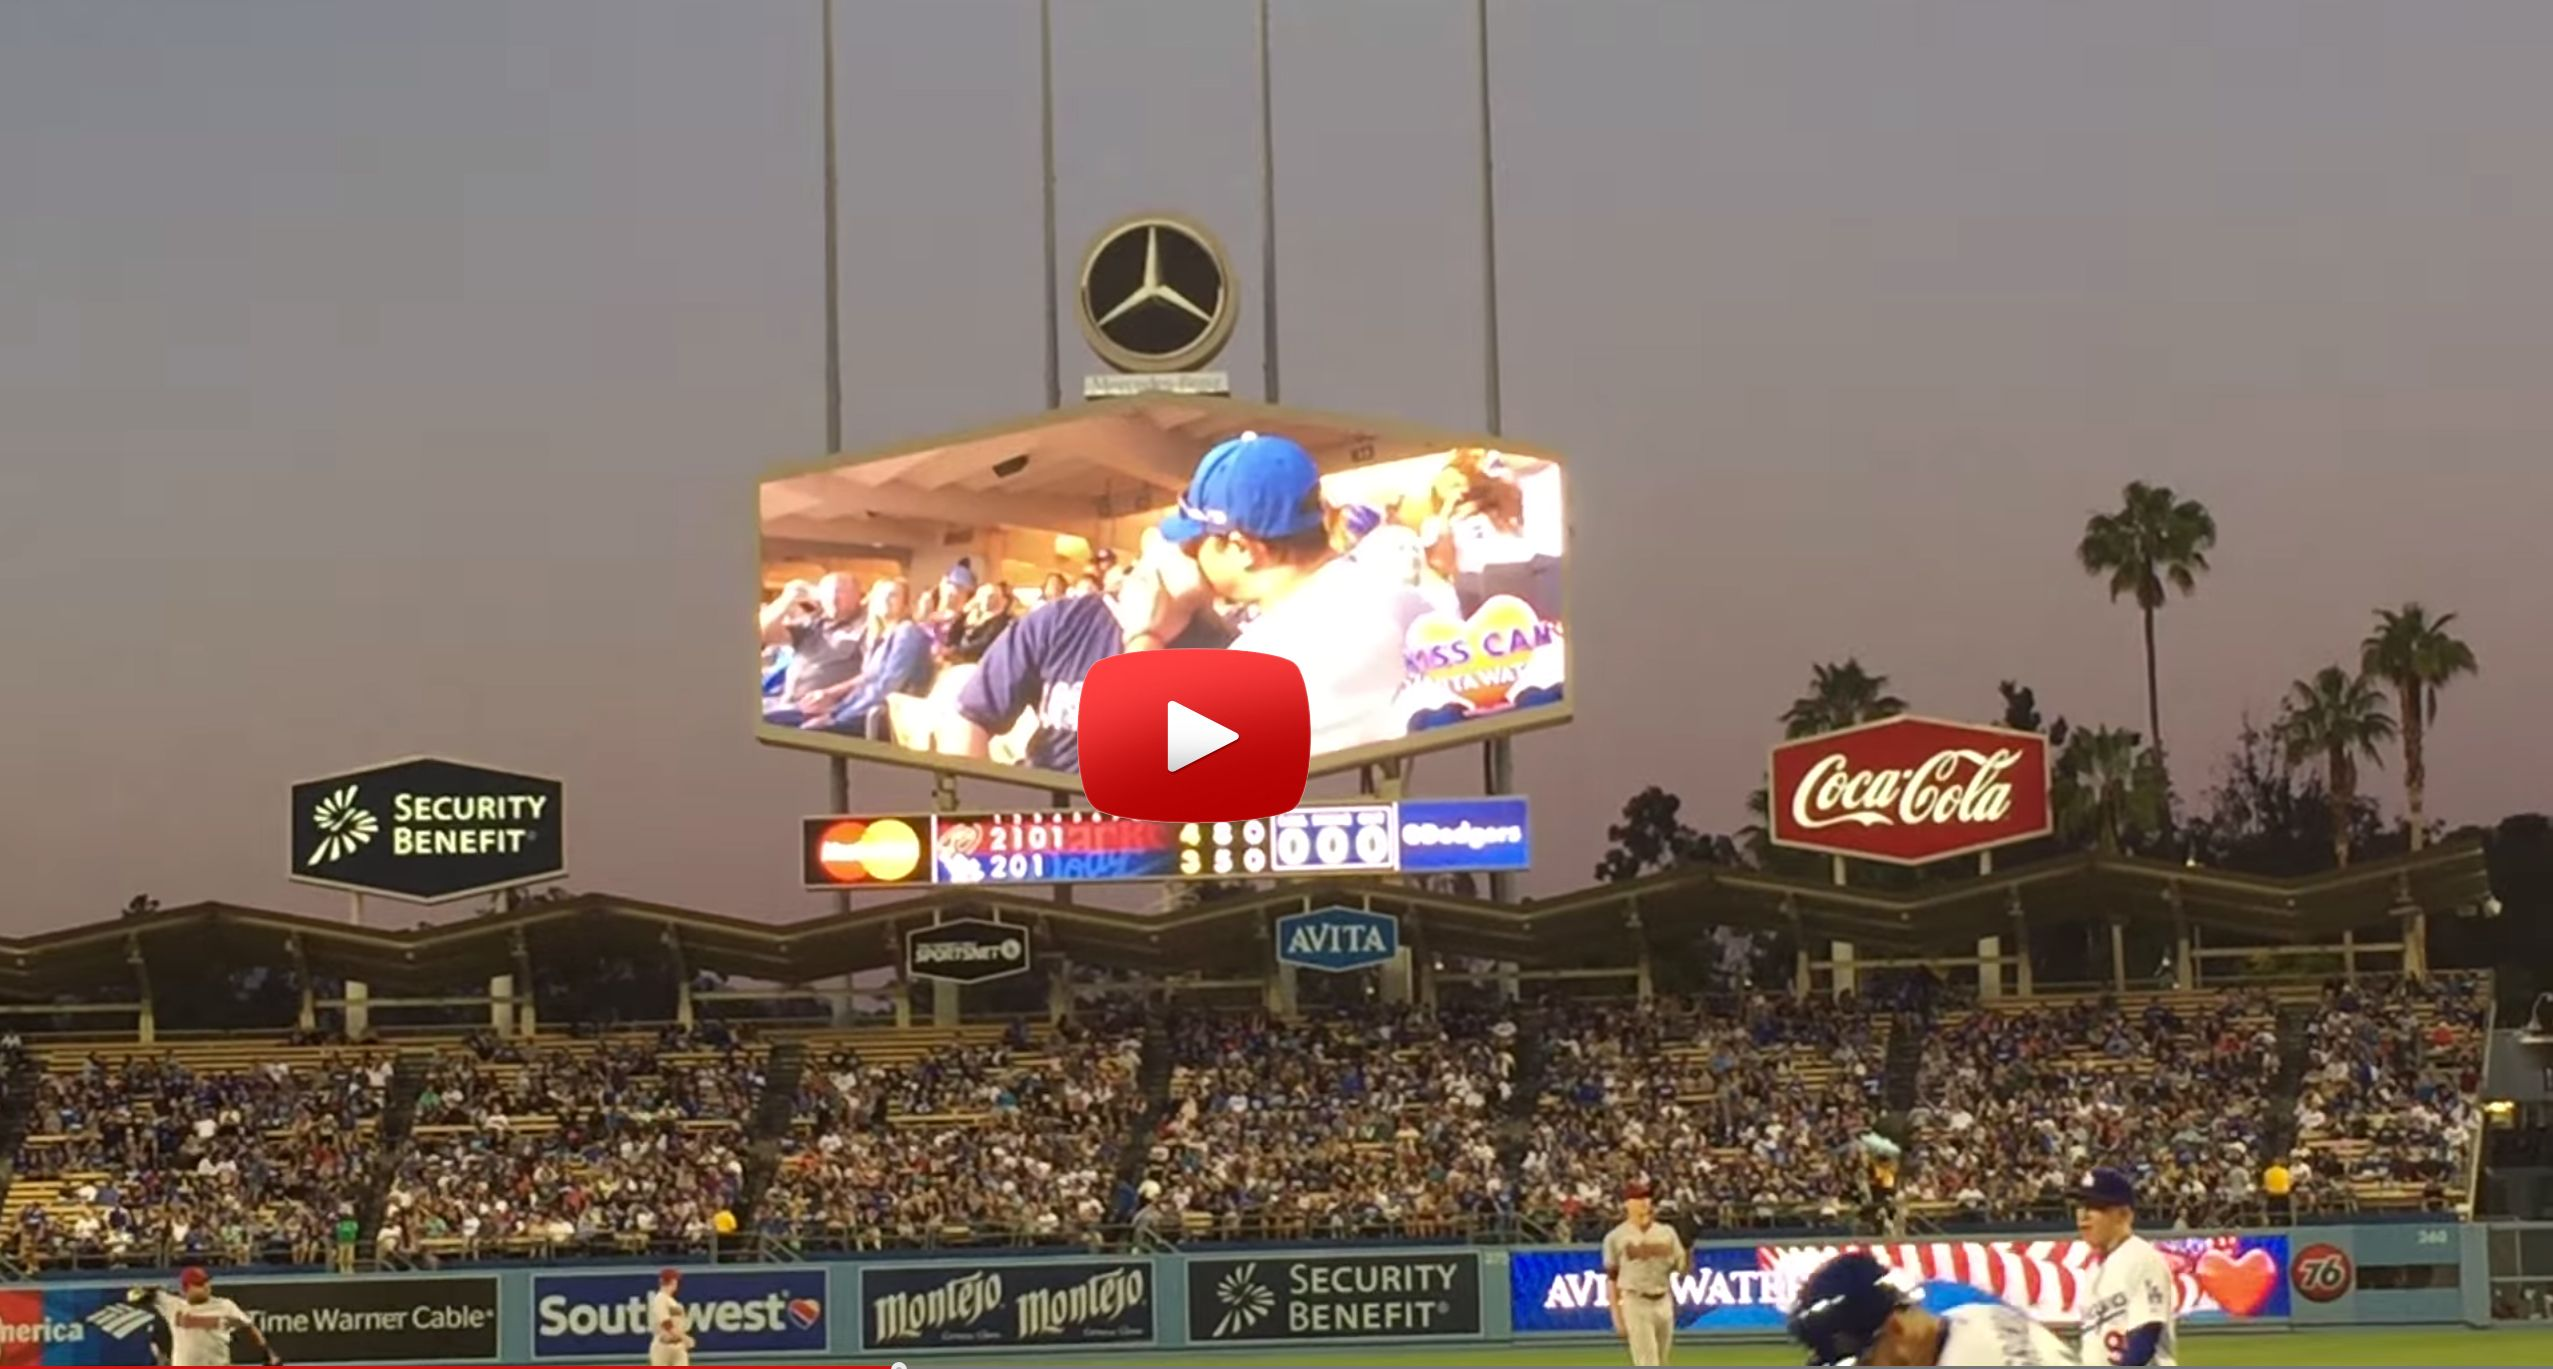 Cam Gay watch this gay kiss on kiss cam cause pandemonium in dodger